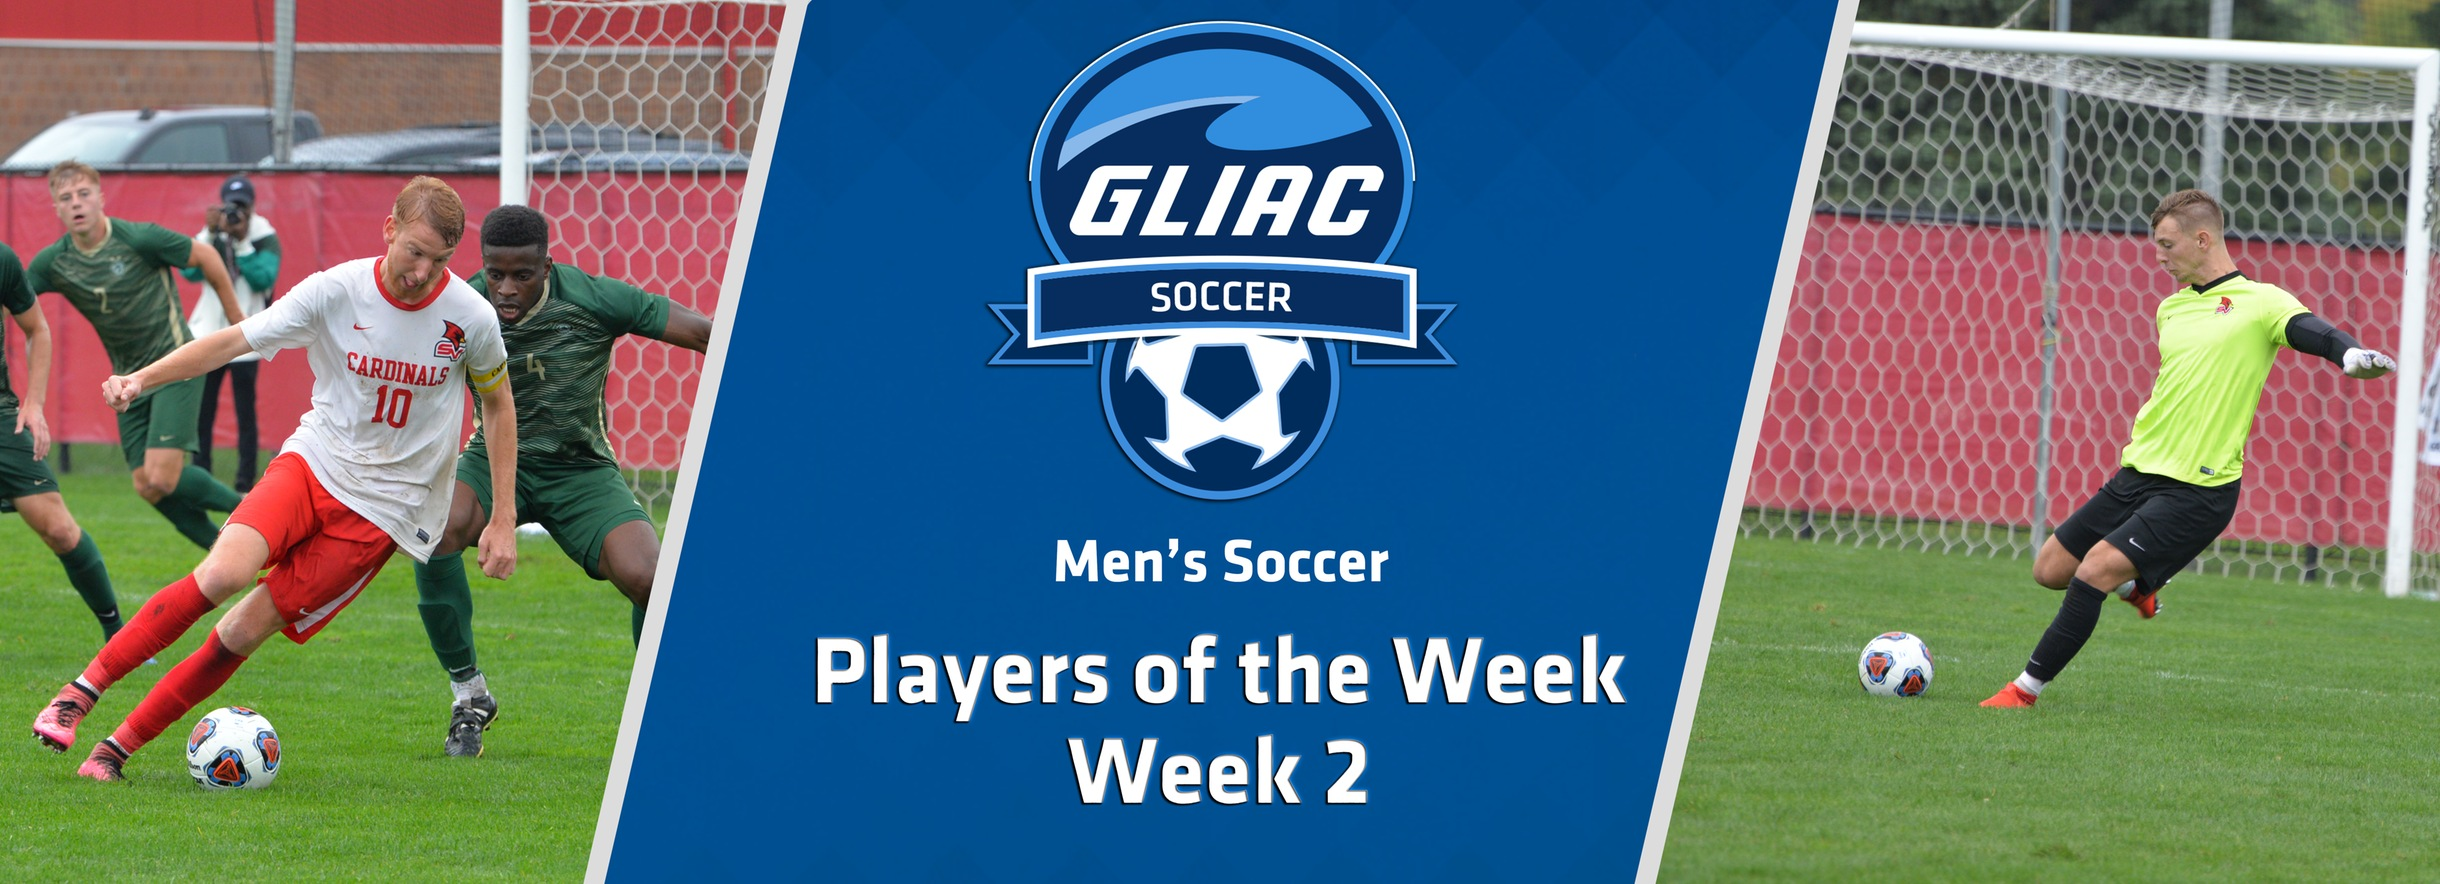 Cardinals Sweep GLIAC Player of the Week Honors